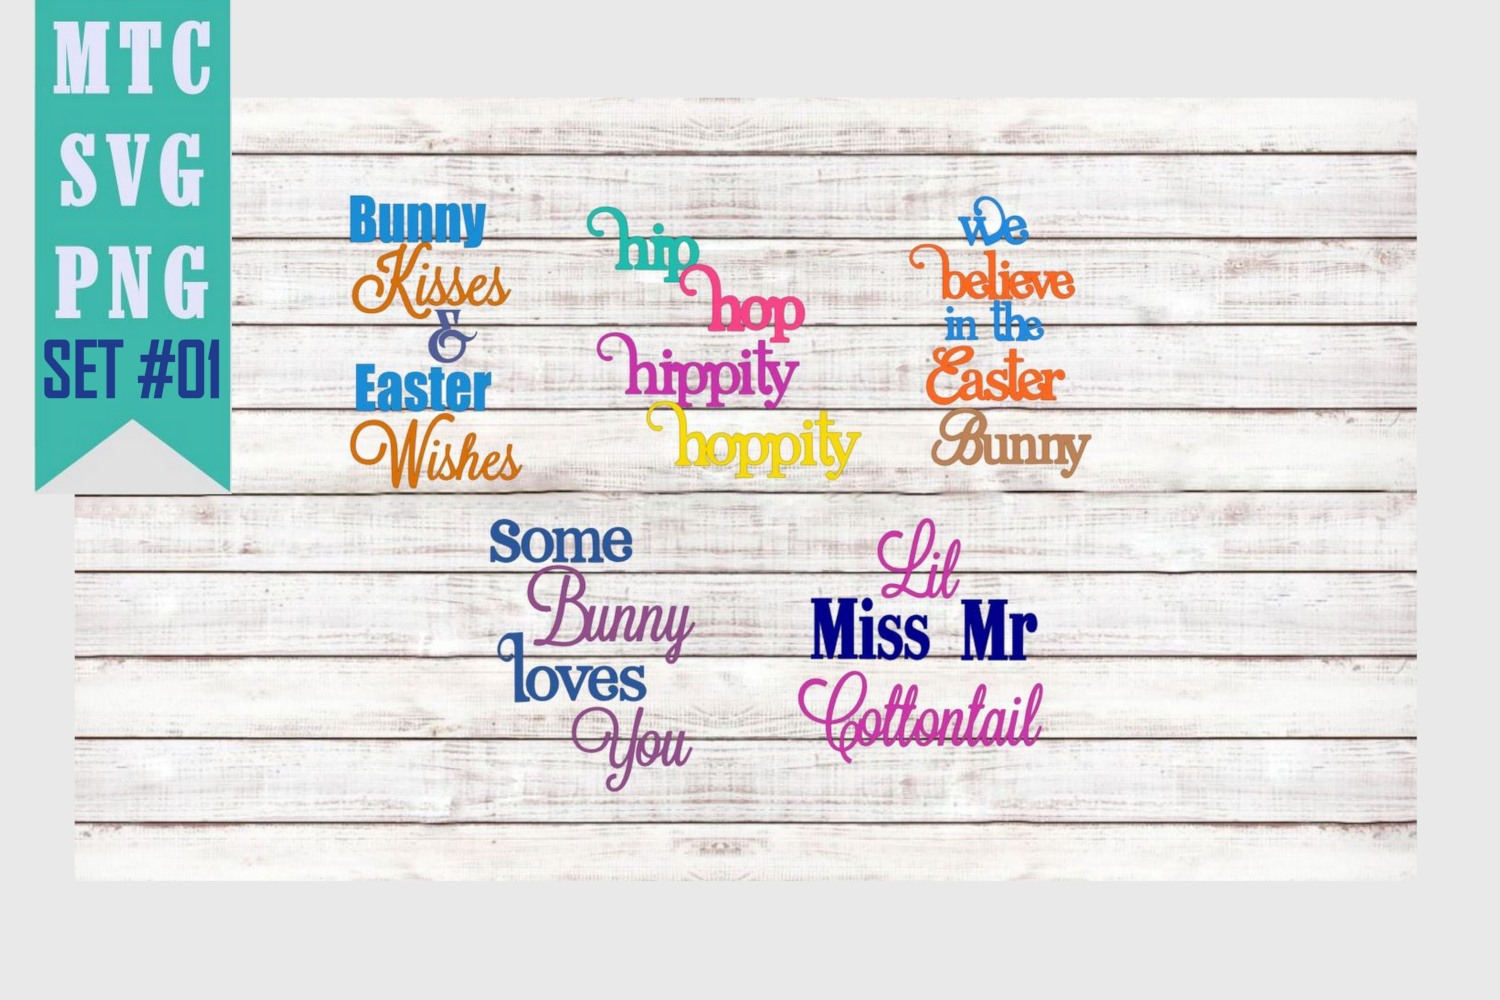 Peeping Easter Bunny Set #3 with Sayings Set #1 SVG Cut File example image 3